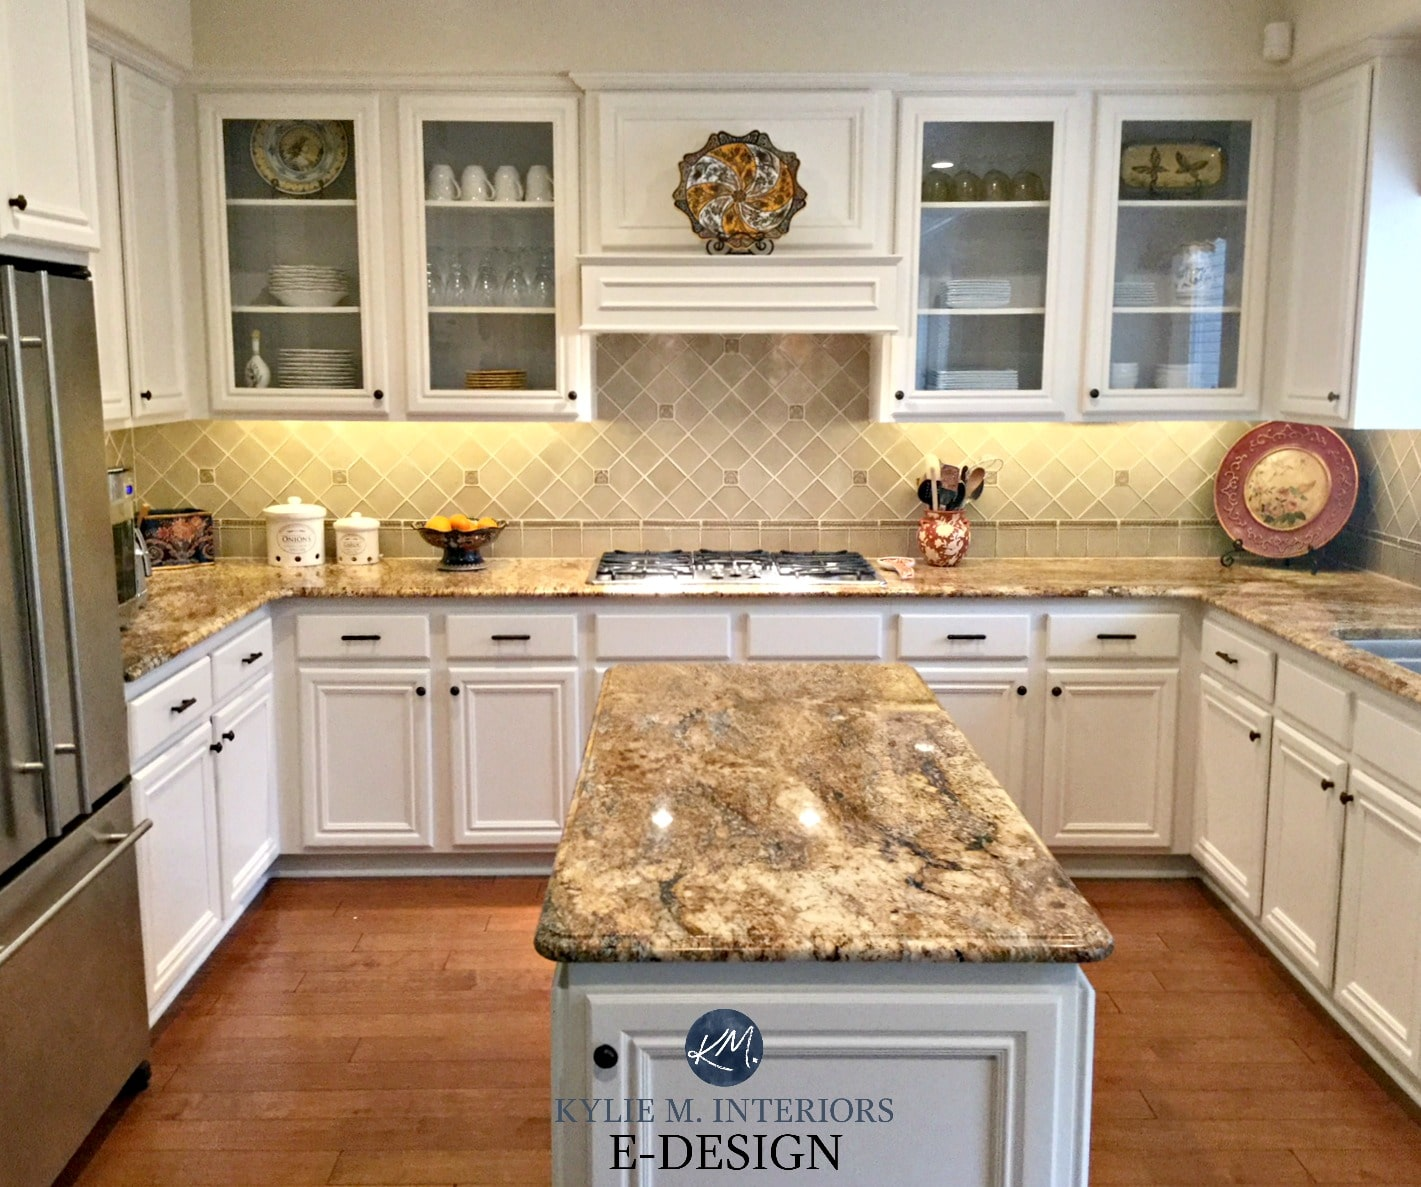 Maple wood kitchen cabinets painted Benjamin Moore White ... on Granite Countertops With Maple Cabinets  id=68667